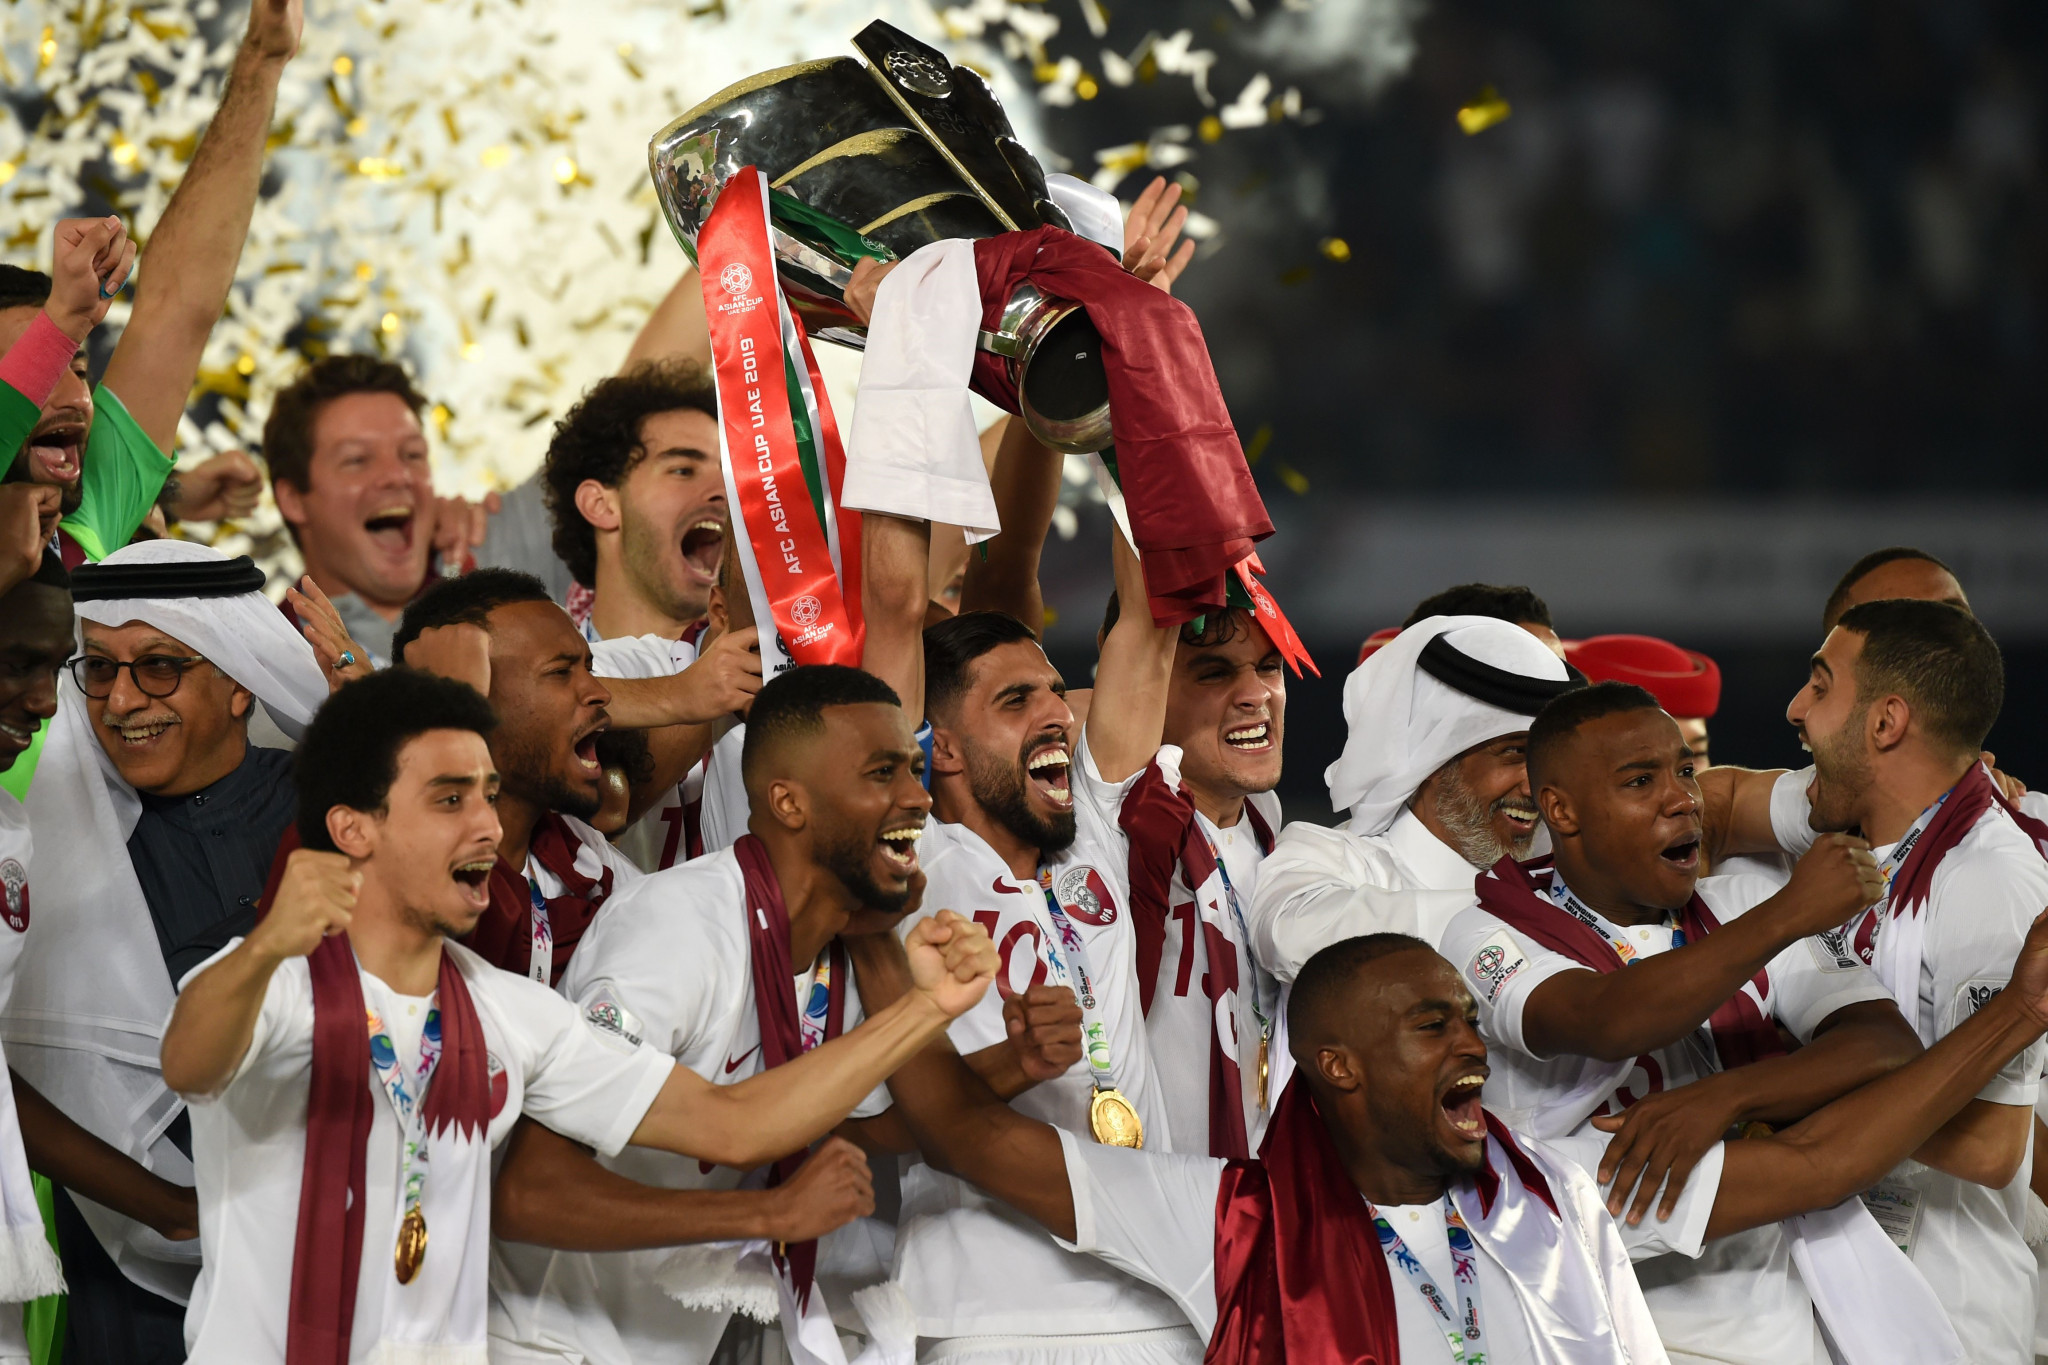 Qatar won the most recent edition of the AFC Asian Cup in 2019 ©Getty Images